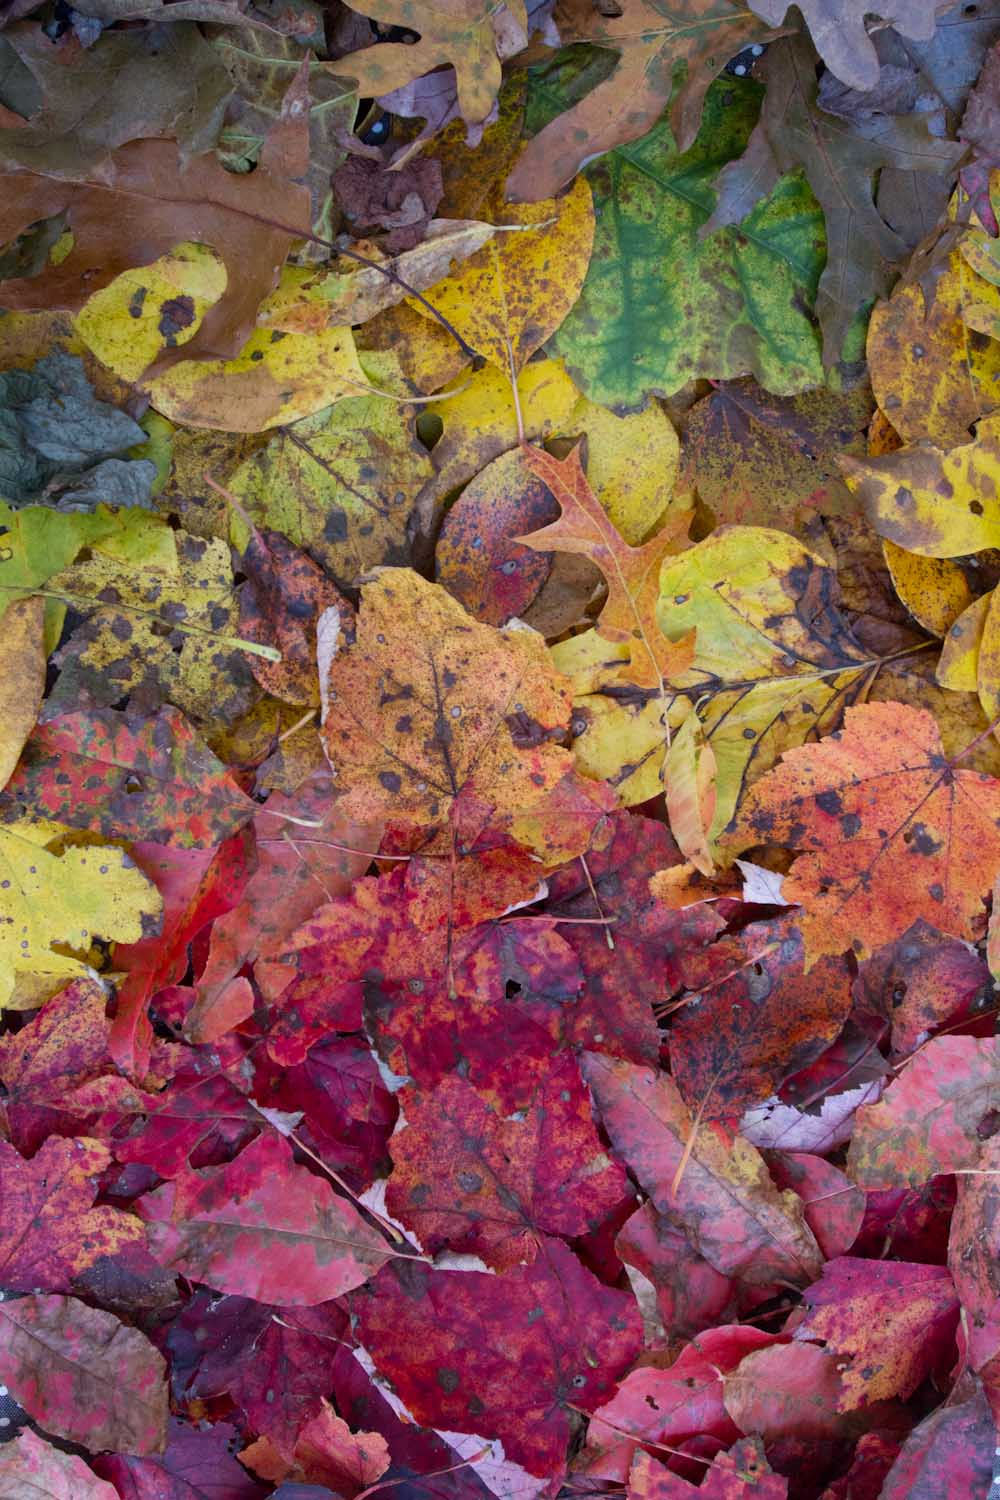 gradiated_colors_forest-7959.jpg